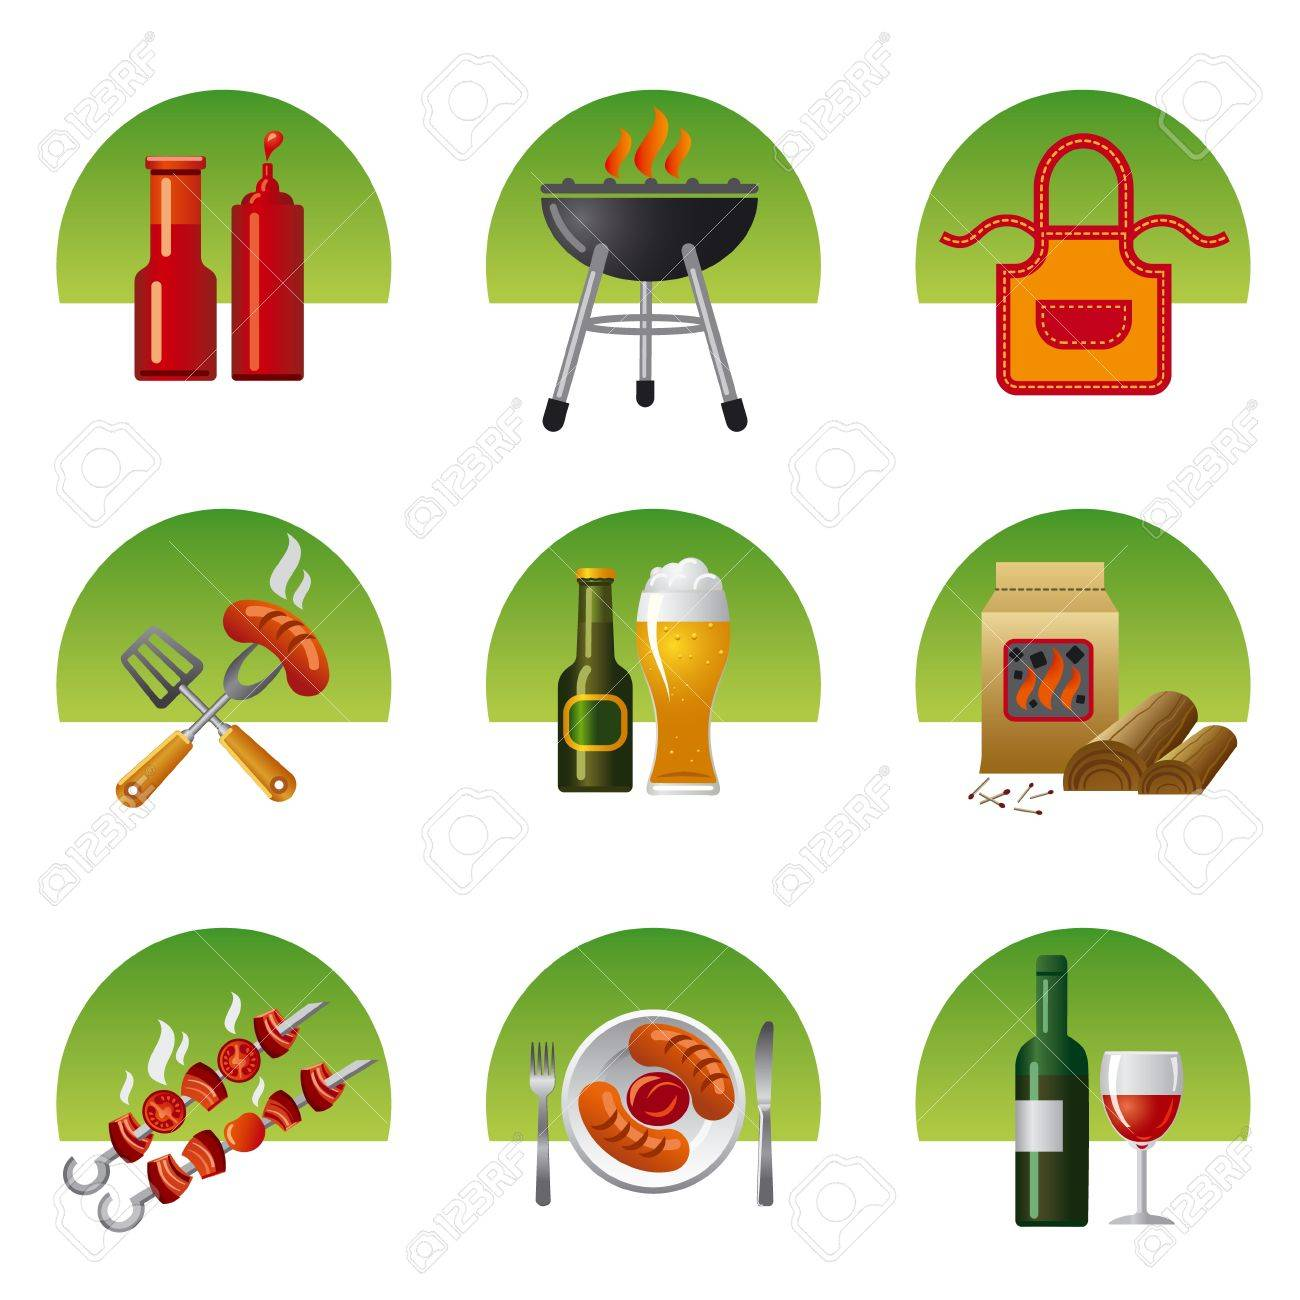 1,959 Barbecue Utensils Stock Vector Illustration And Royalty Free ...